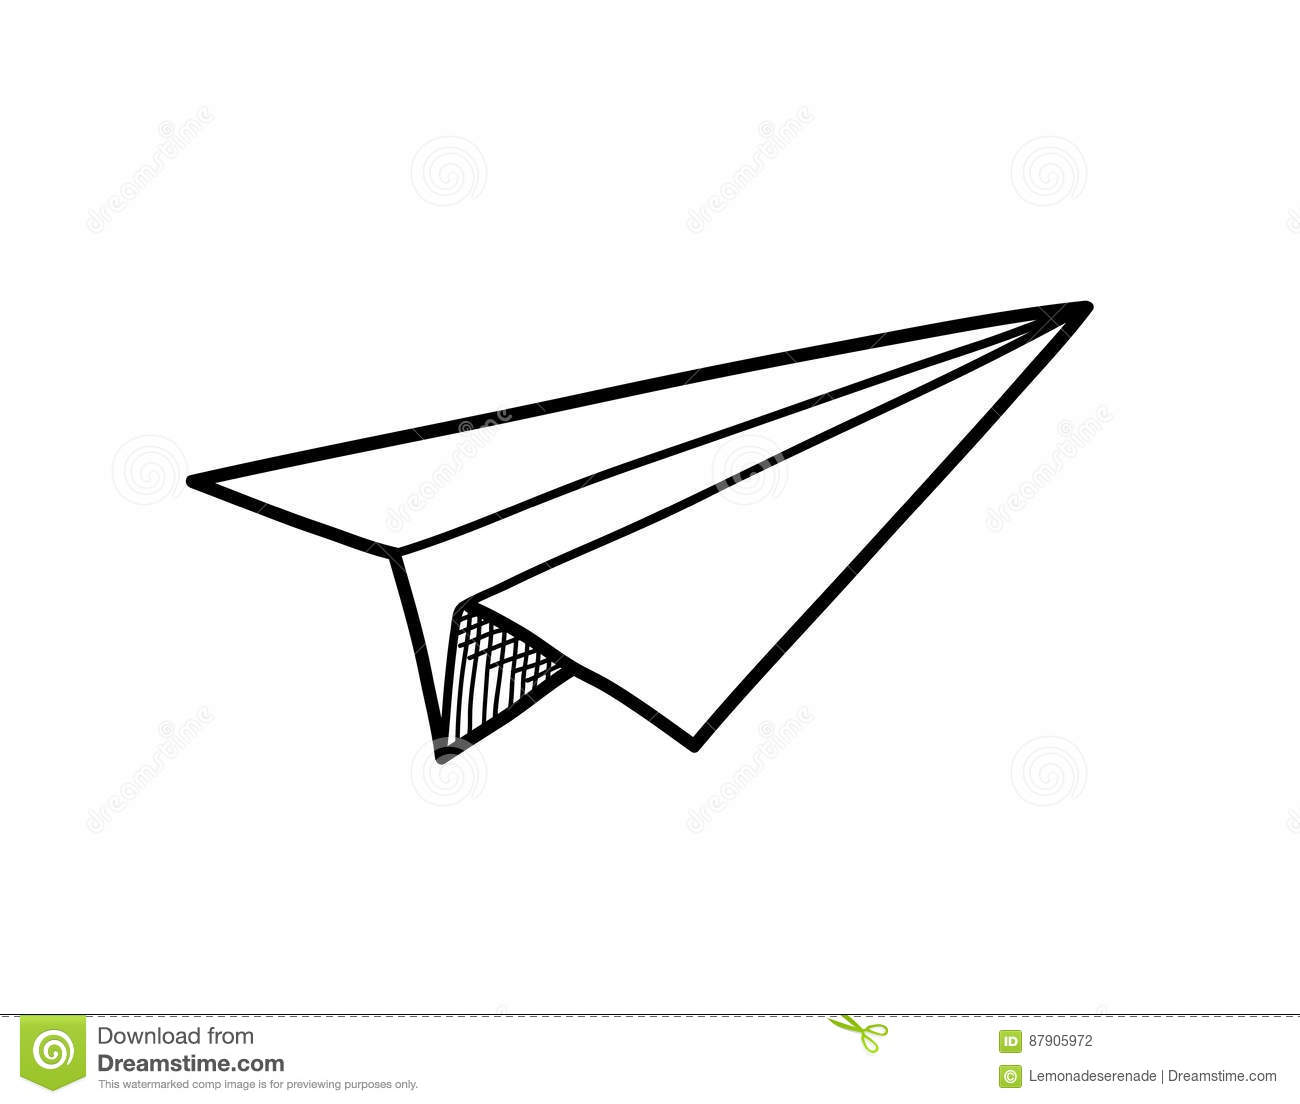 Origami Paper Airplane Doodle Stock Vector Illustration Of Paper